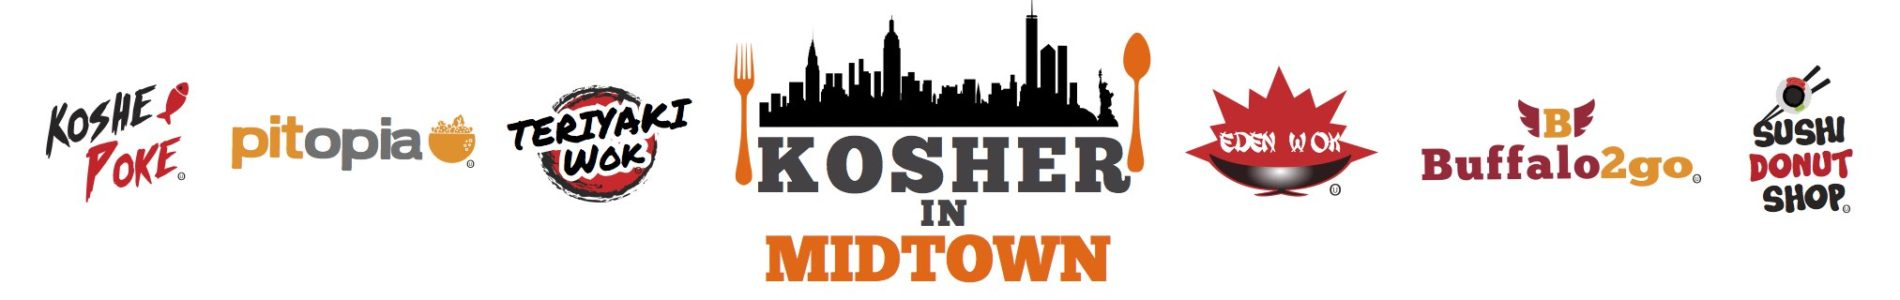 kosher-in-midtown-logos-banner-1-1900x300